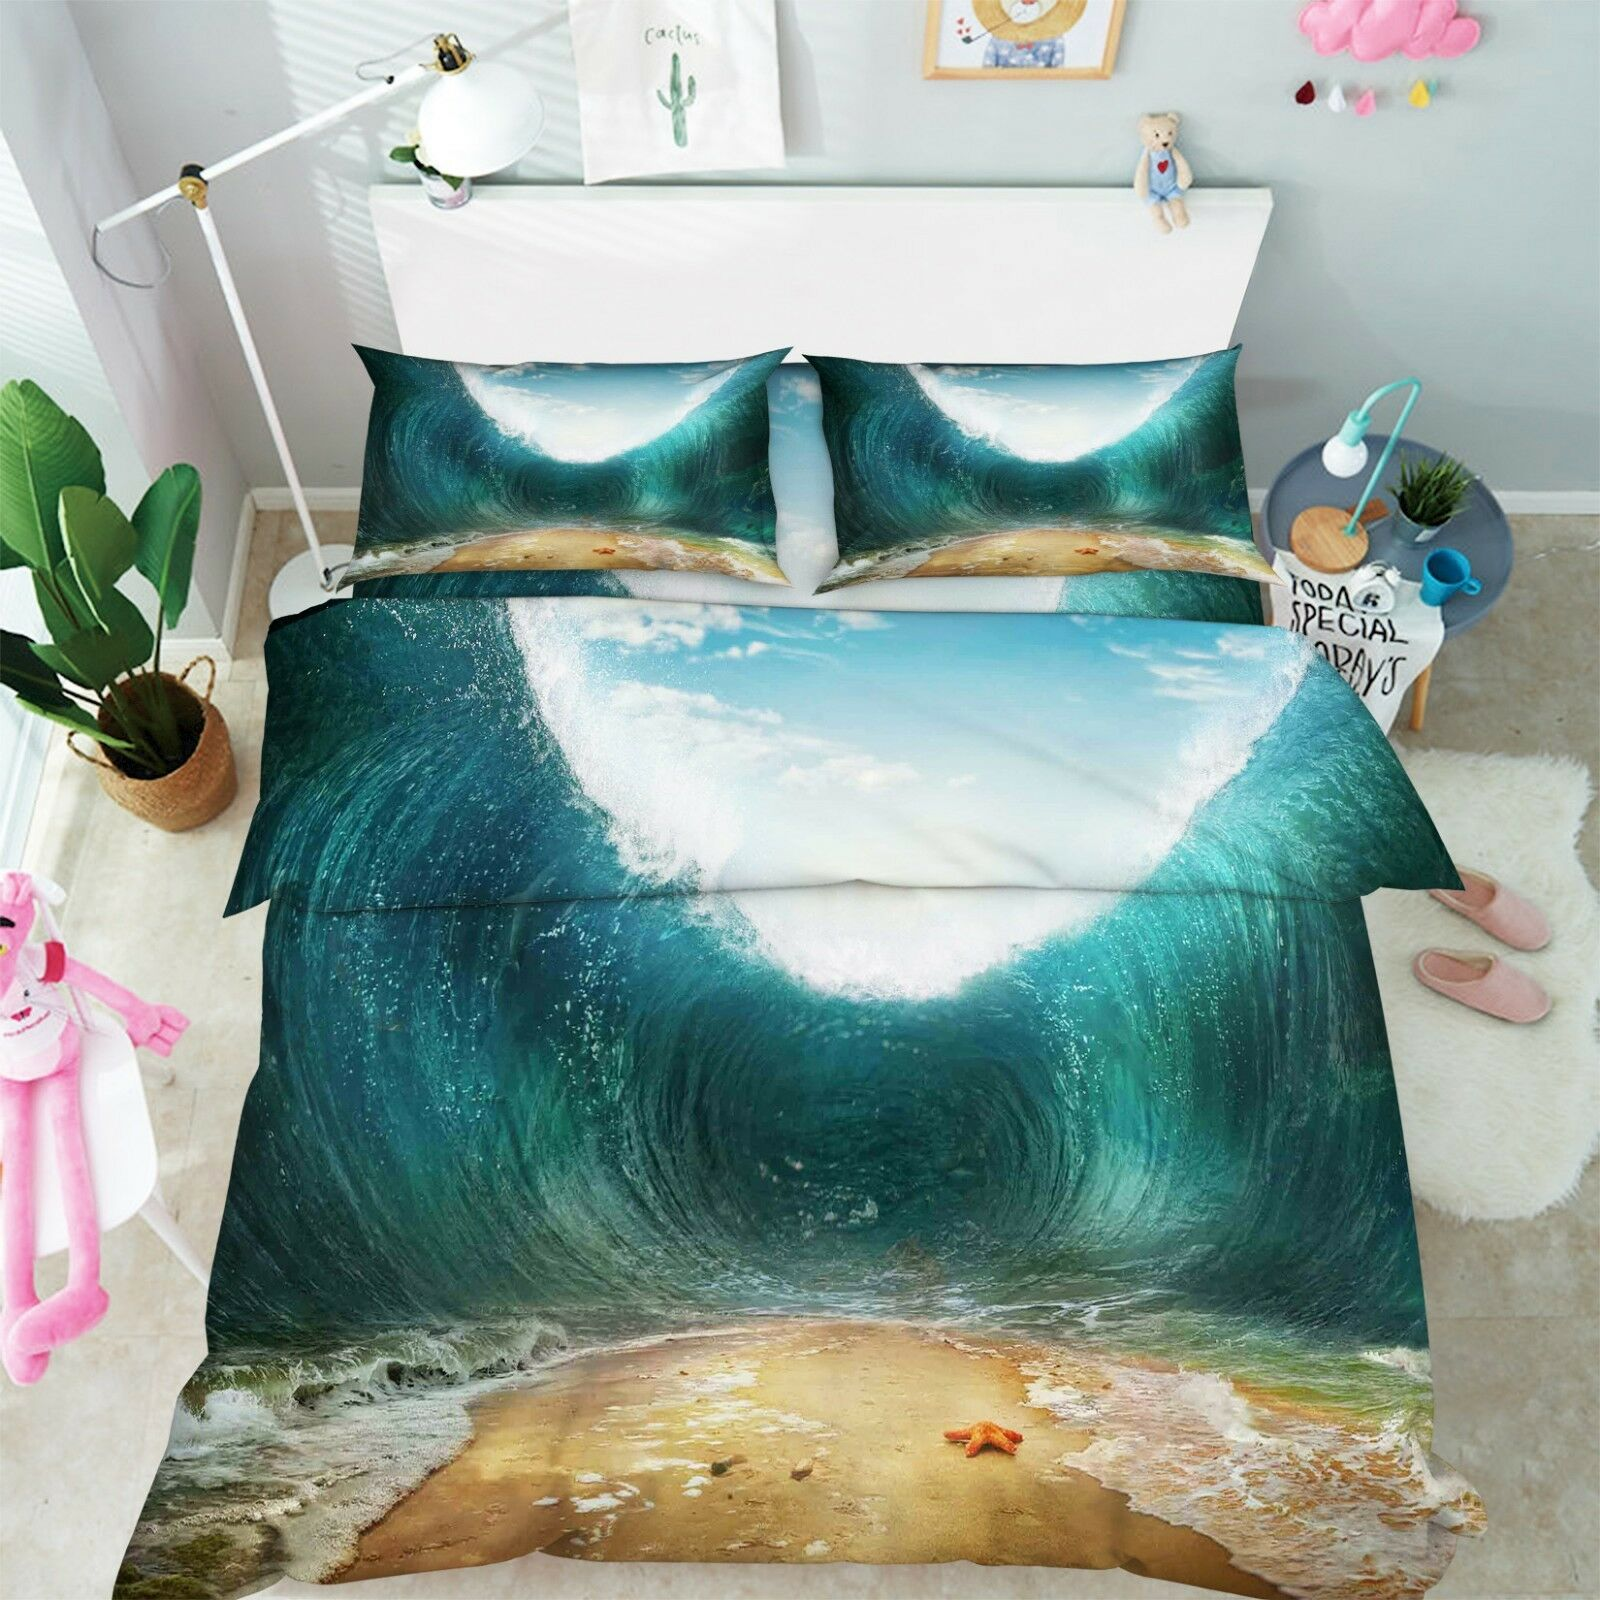 3D Wave Walkway 686 Bed Pillowcases Quilt Duvet Cover Set Single King UK Lemon